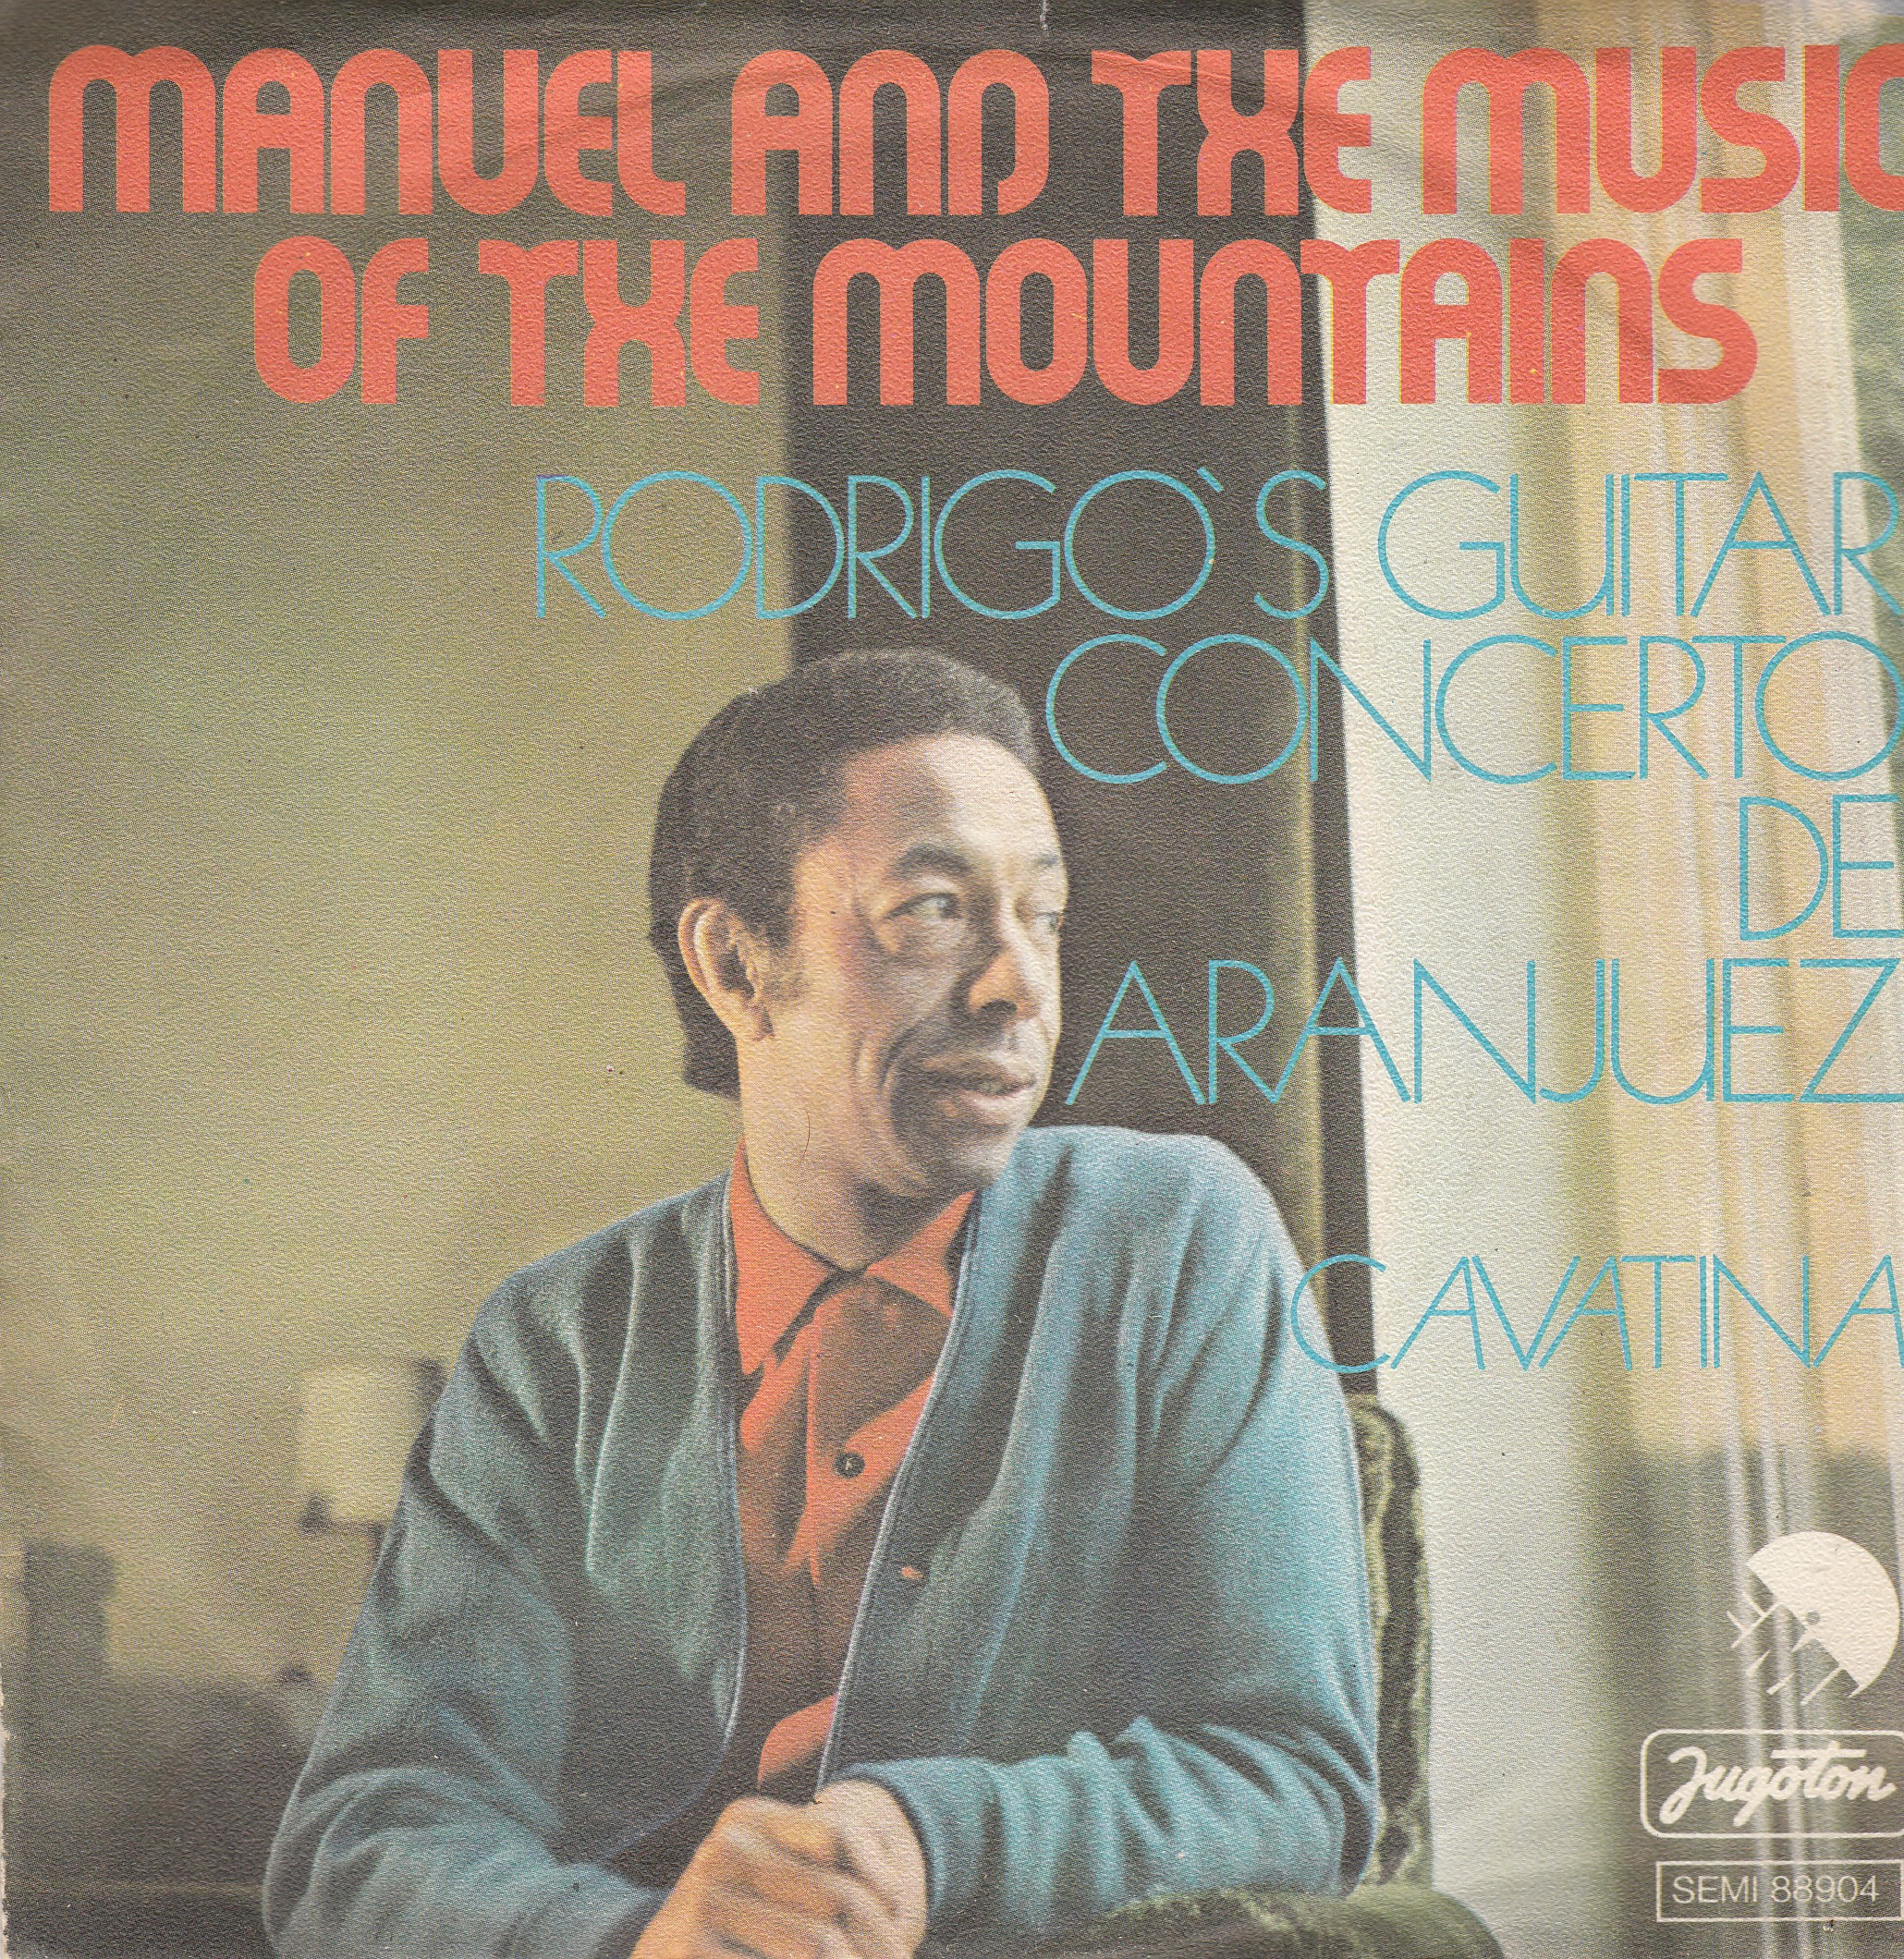 Manuel The Music Of The Mountains - Rodrigos Guitar Concert De Aranjuez/cavatina